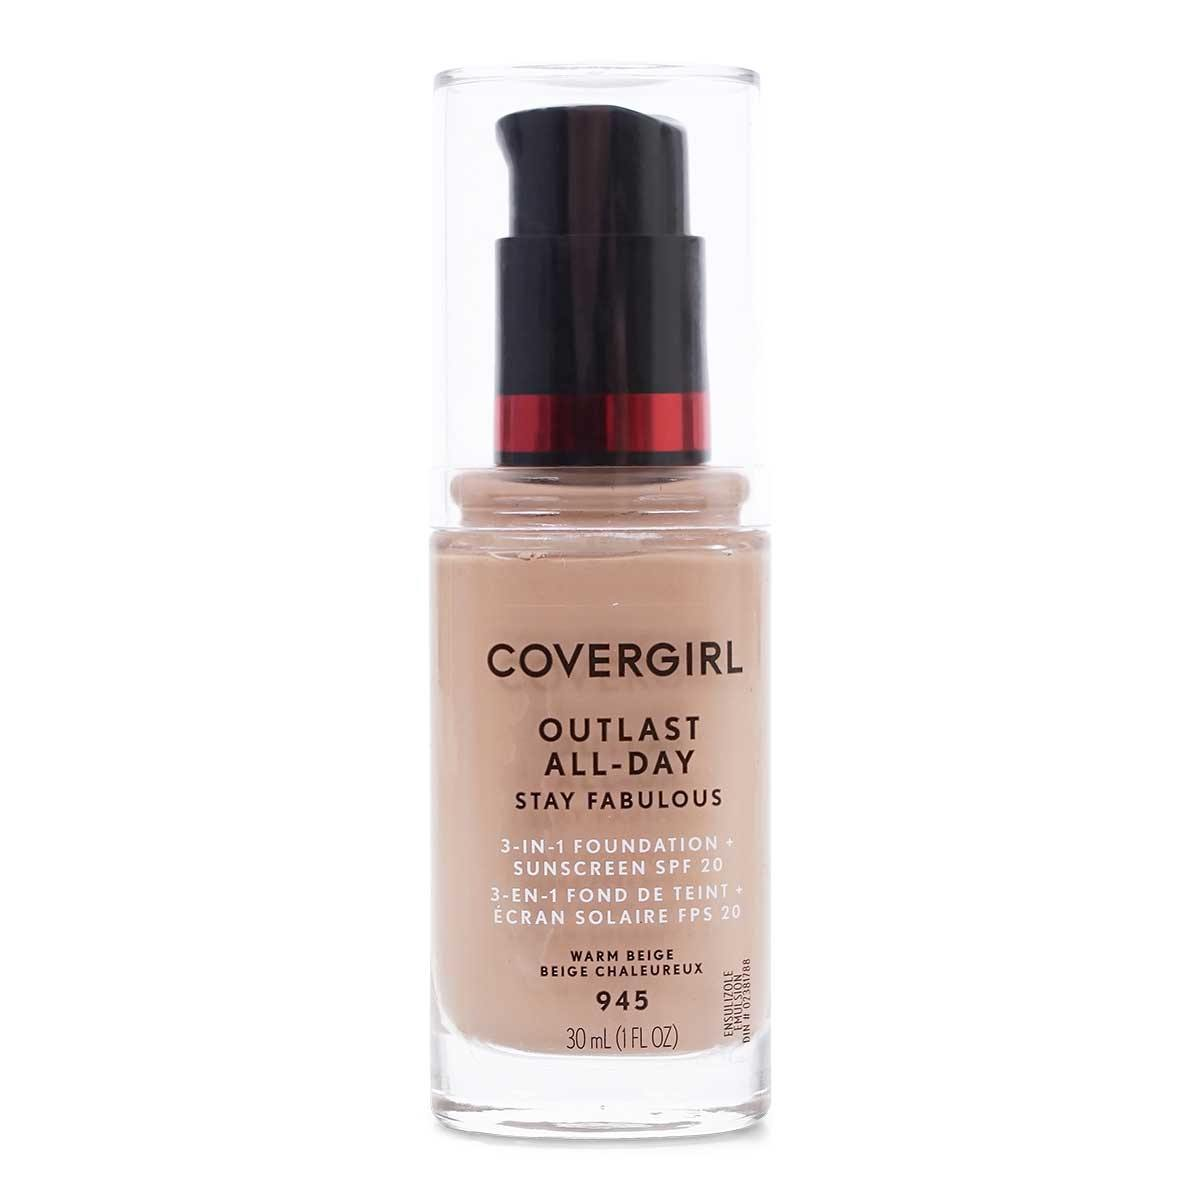 COVERGIRL OUTLAST STAY FABULOUS LIQUID FOUNDATION - Case of 24 units